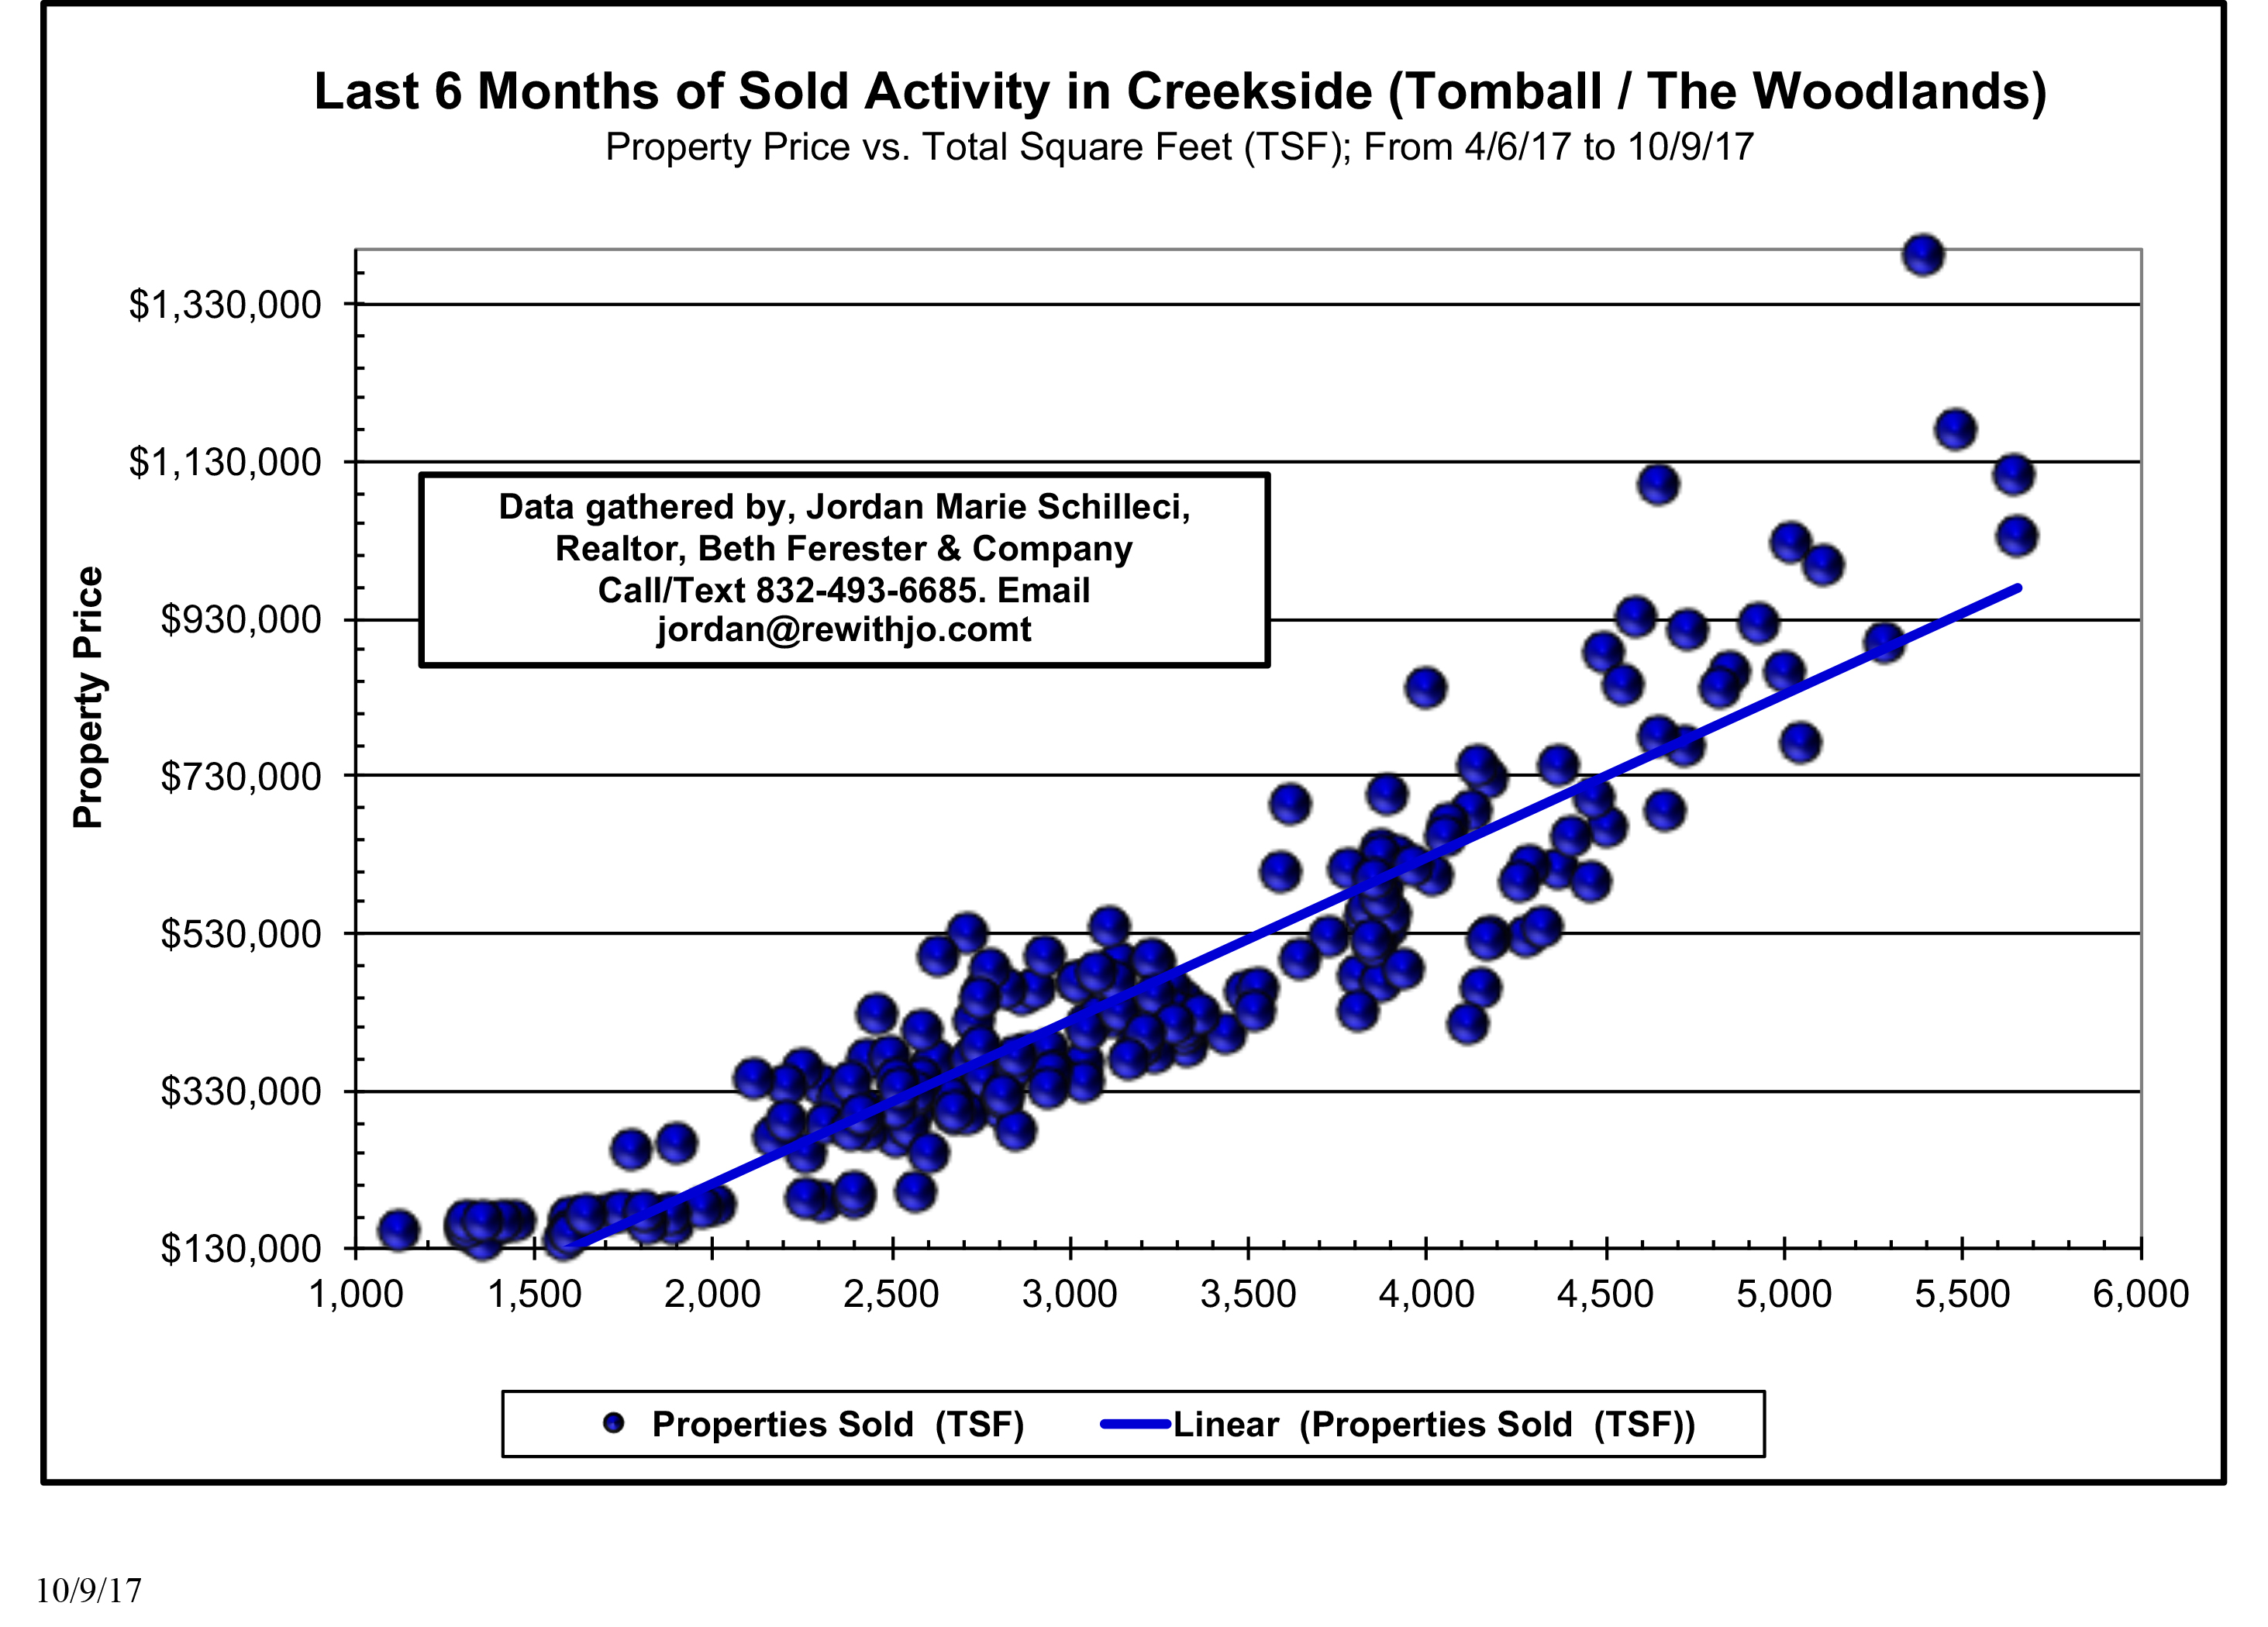 Last 6 Months of Sold Activity in Creekside The Woodlands